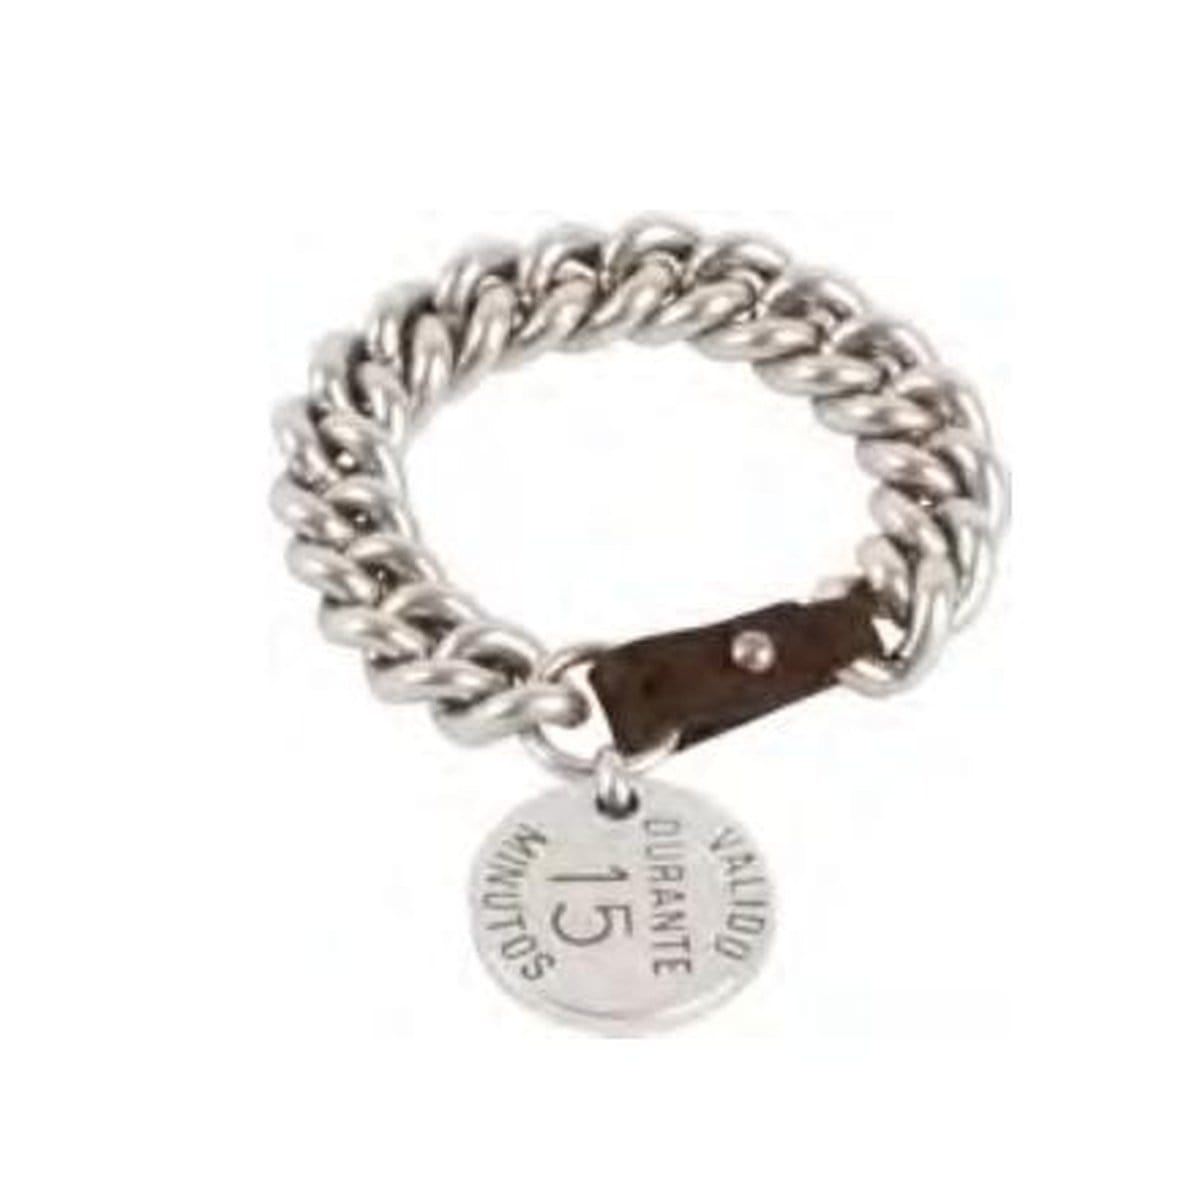 Sterling Silver Plated Leather Bracelet - B0074 MMR - CXC